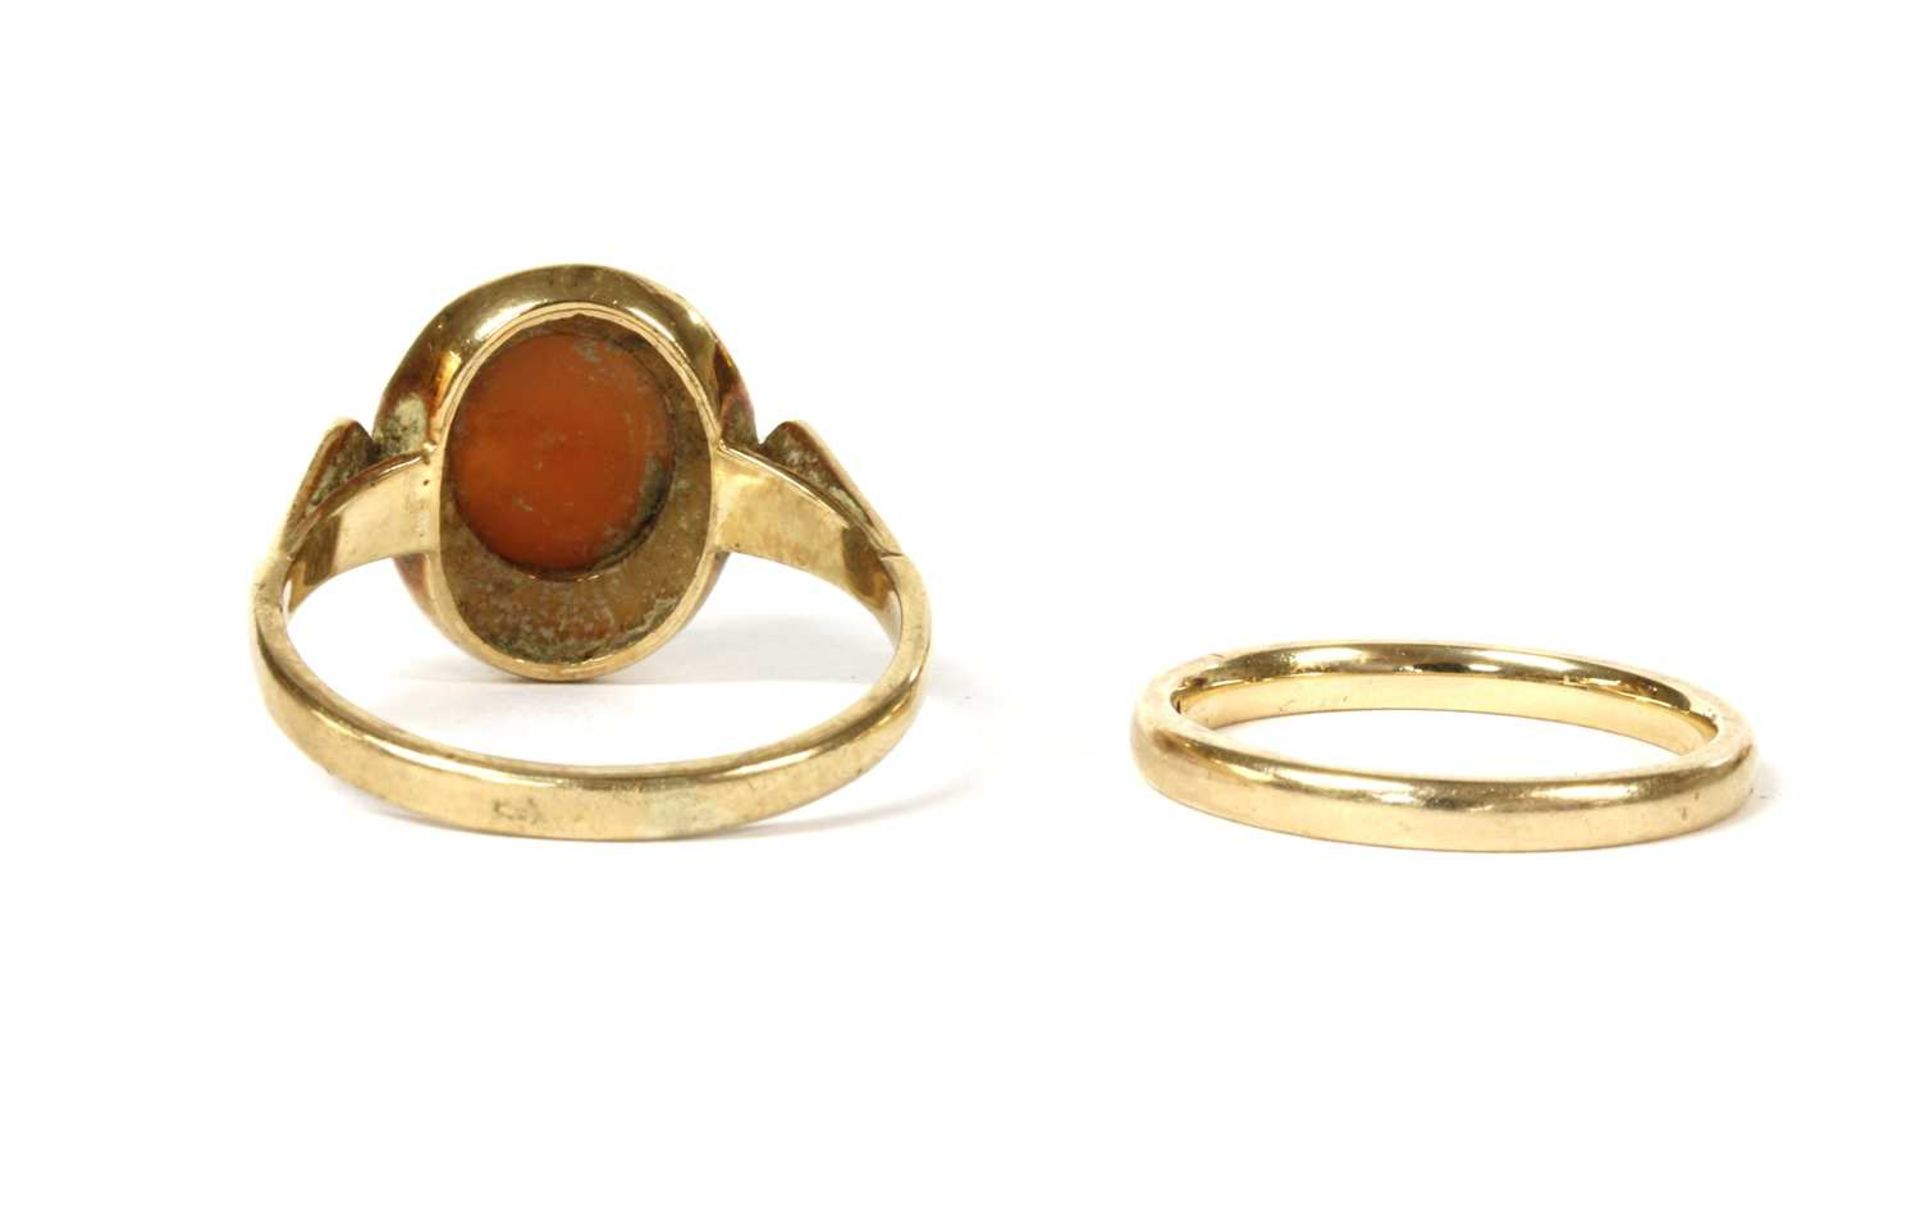 A 9ct gold court section wedding ring, - Image 2 of 2